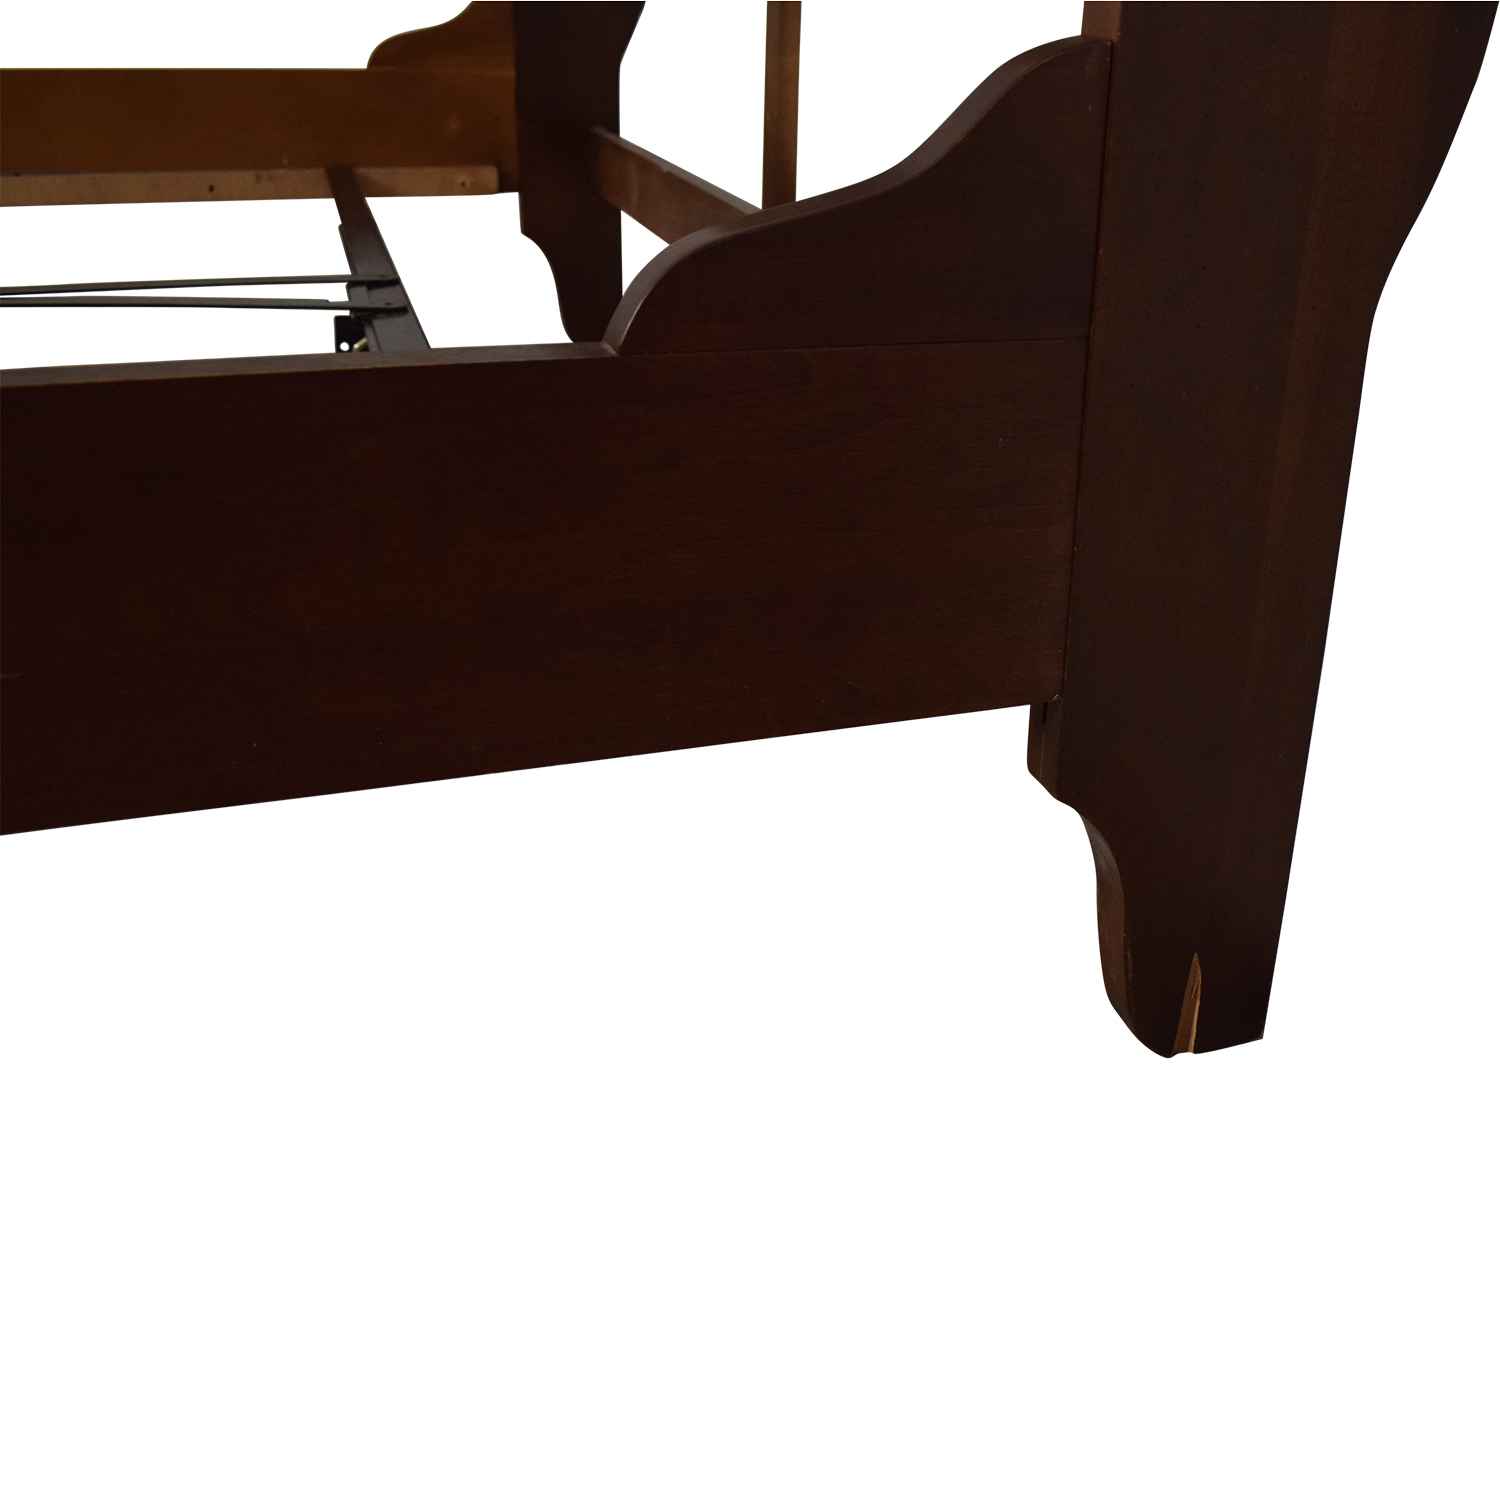 Kincaid Chocolate Brown Wood Queen Bed / Bed Frames